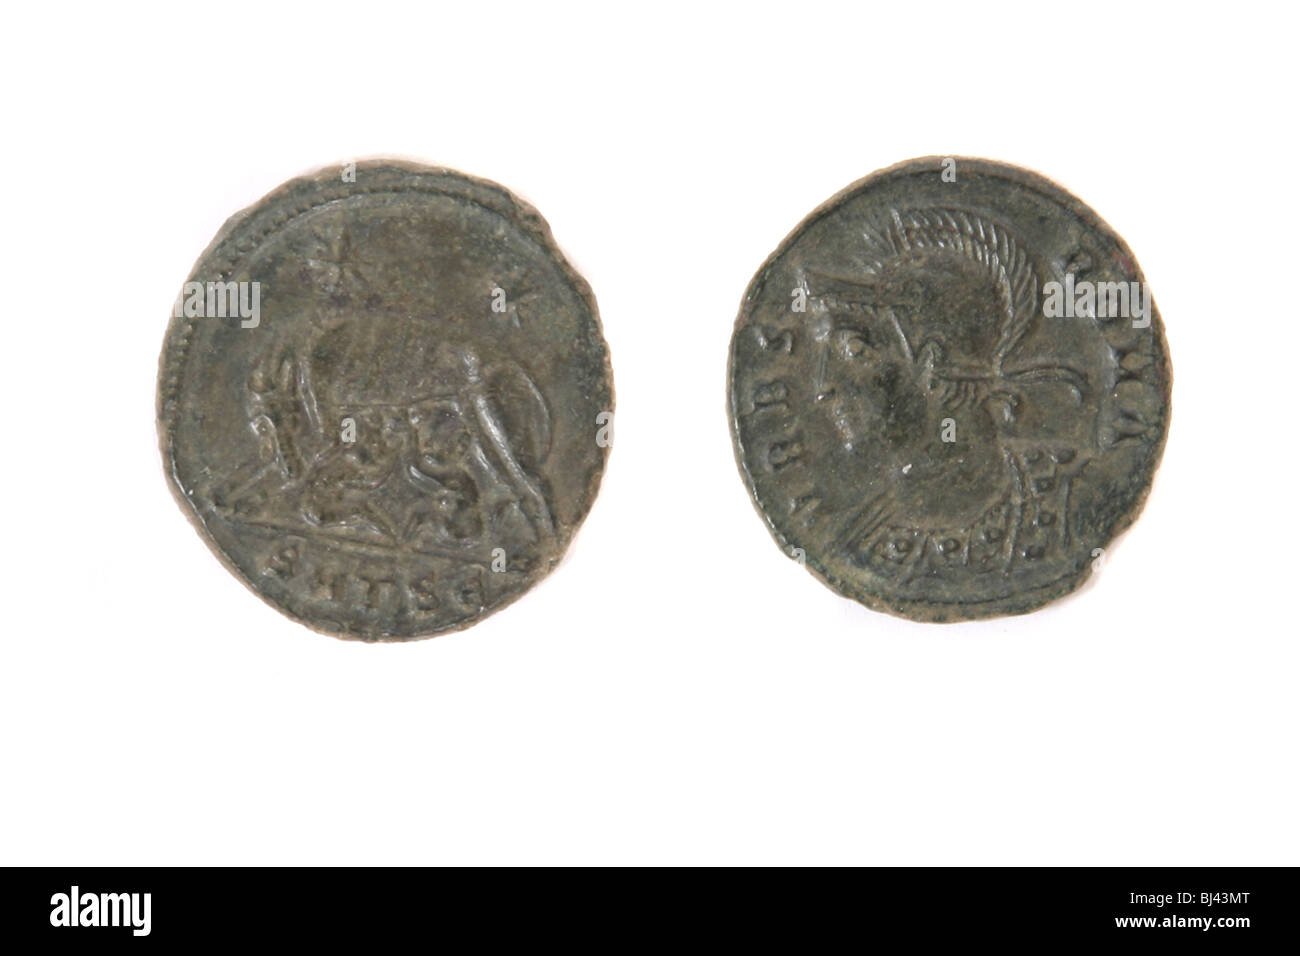 The back and front of a Roman coin found in England of the Roman Emperor Constantine 307 - 337 AD - Stock Image